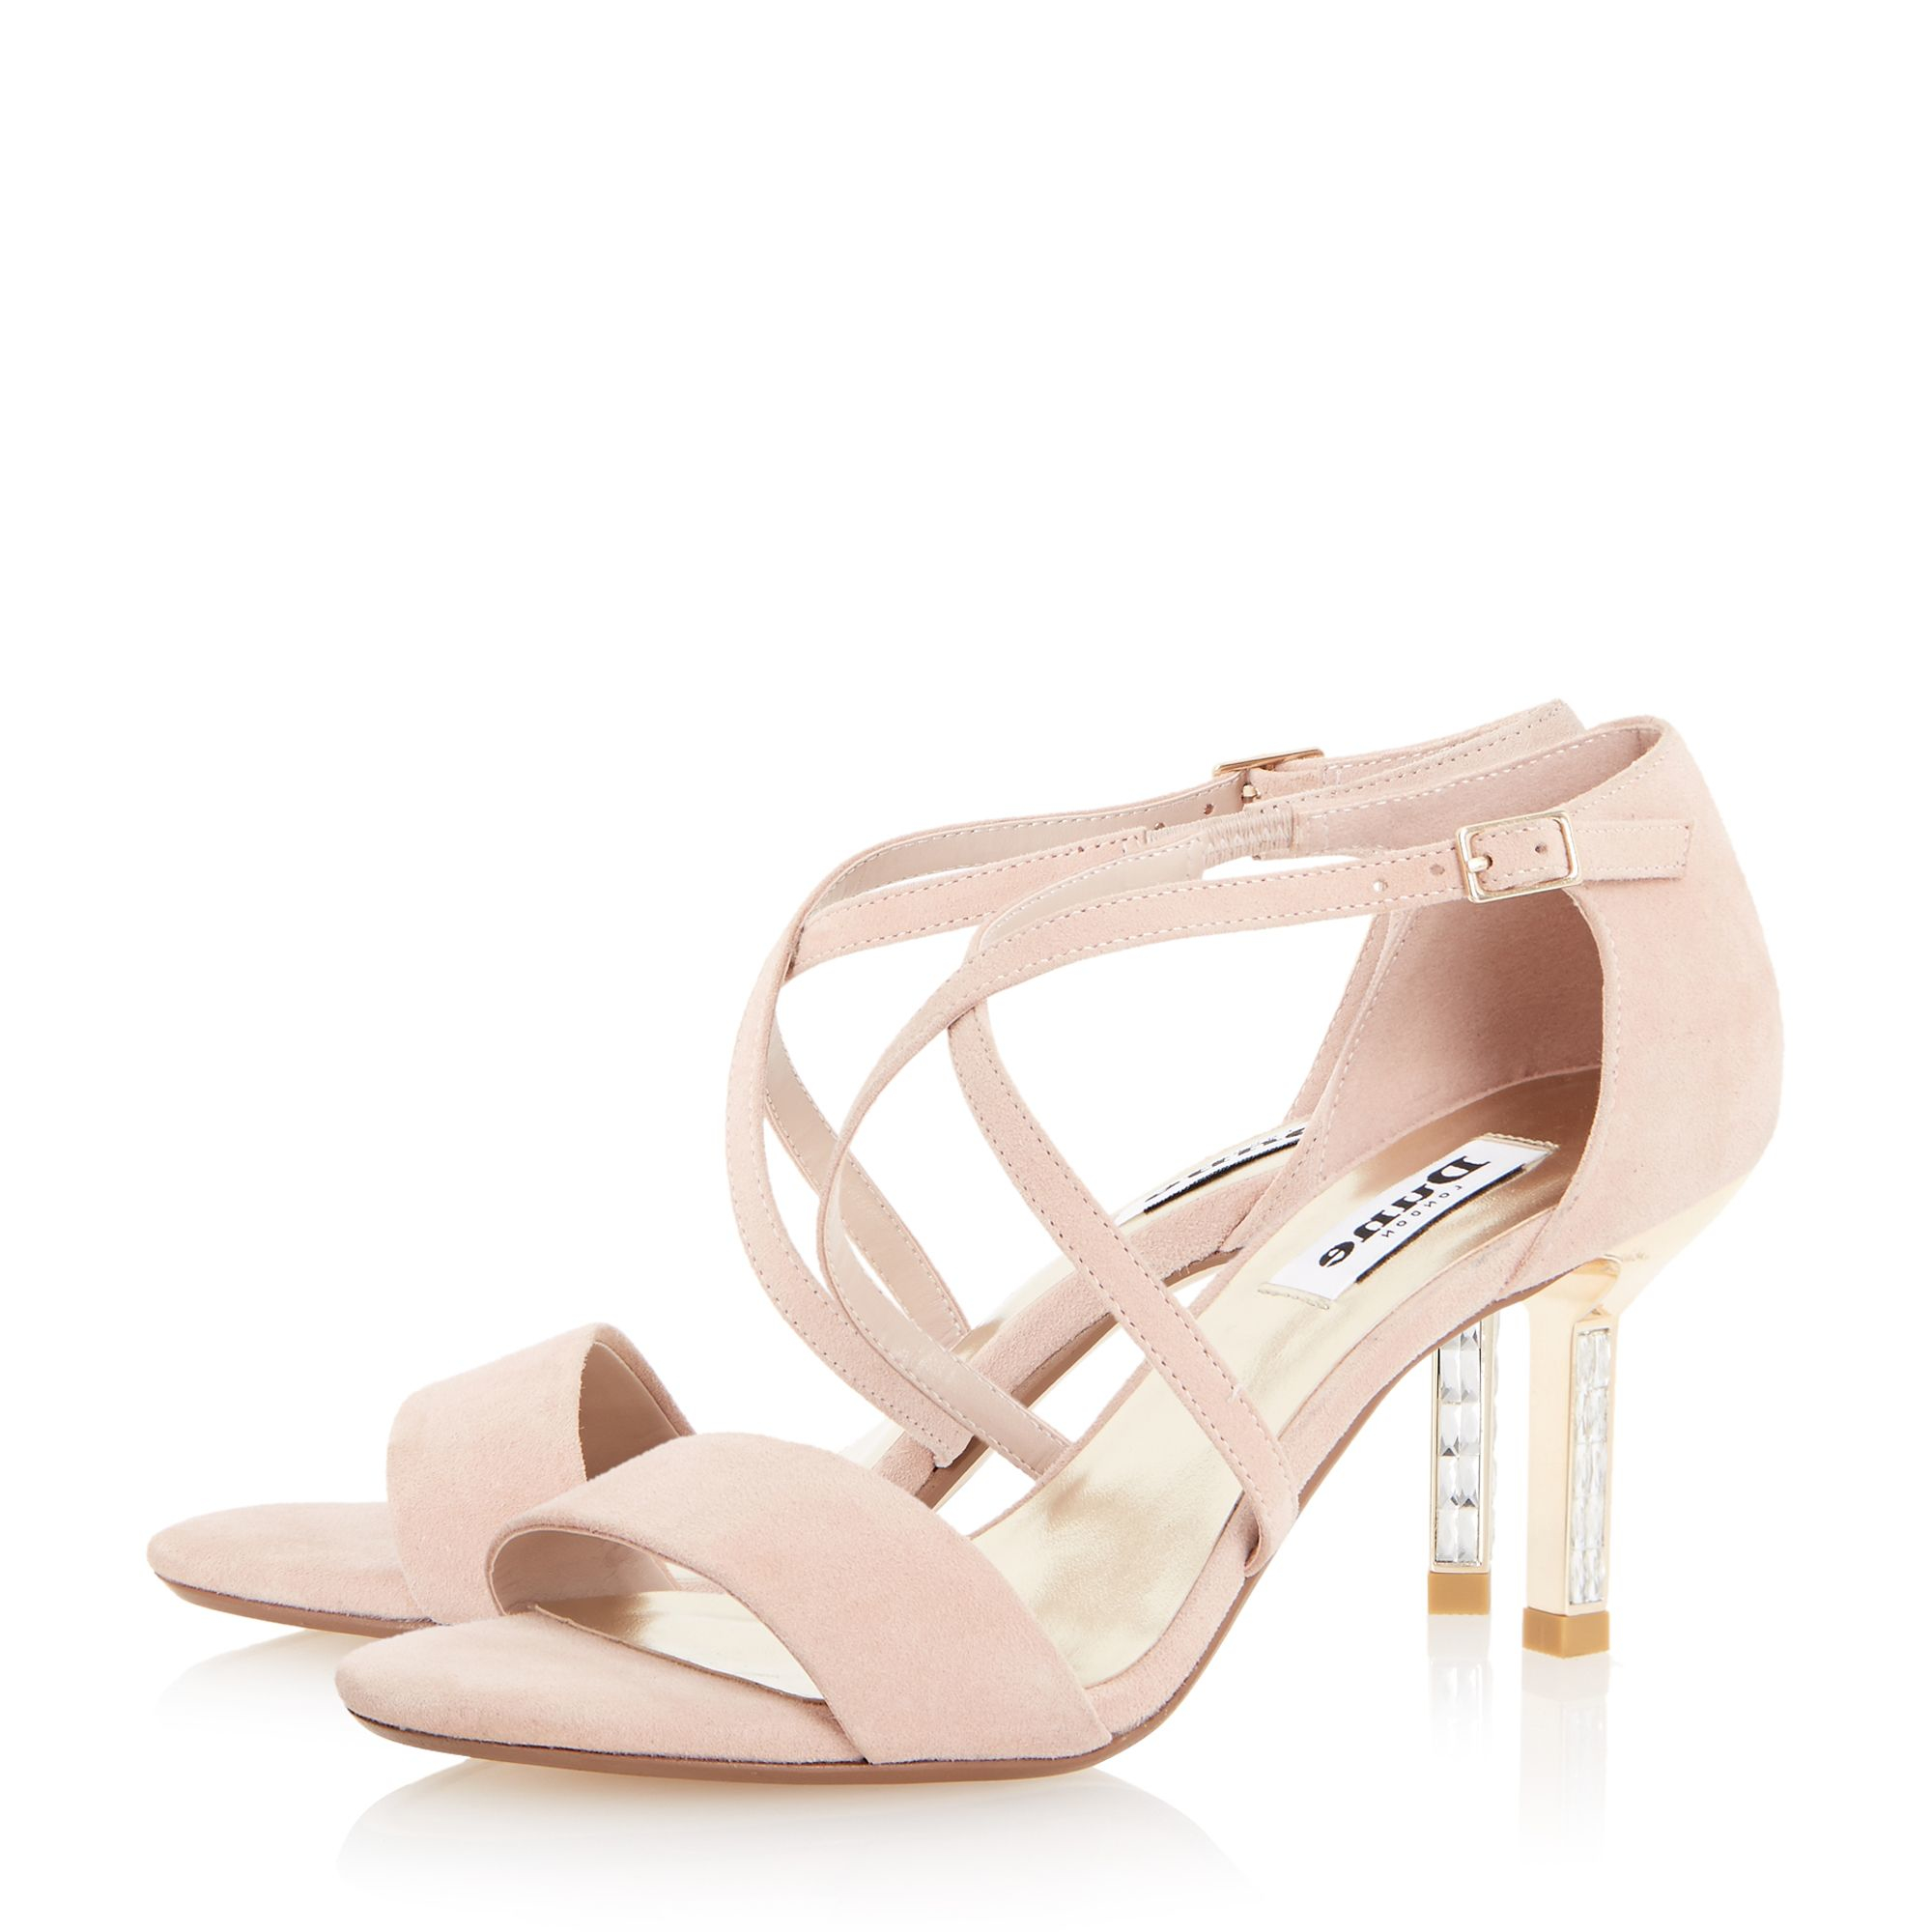 Lyst - Dune Mindee Diamante Mid Heel Sandals in Pink